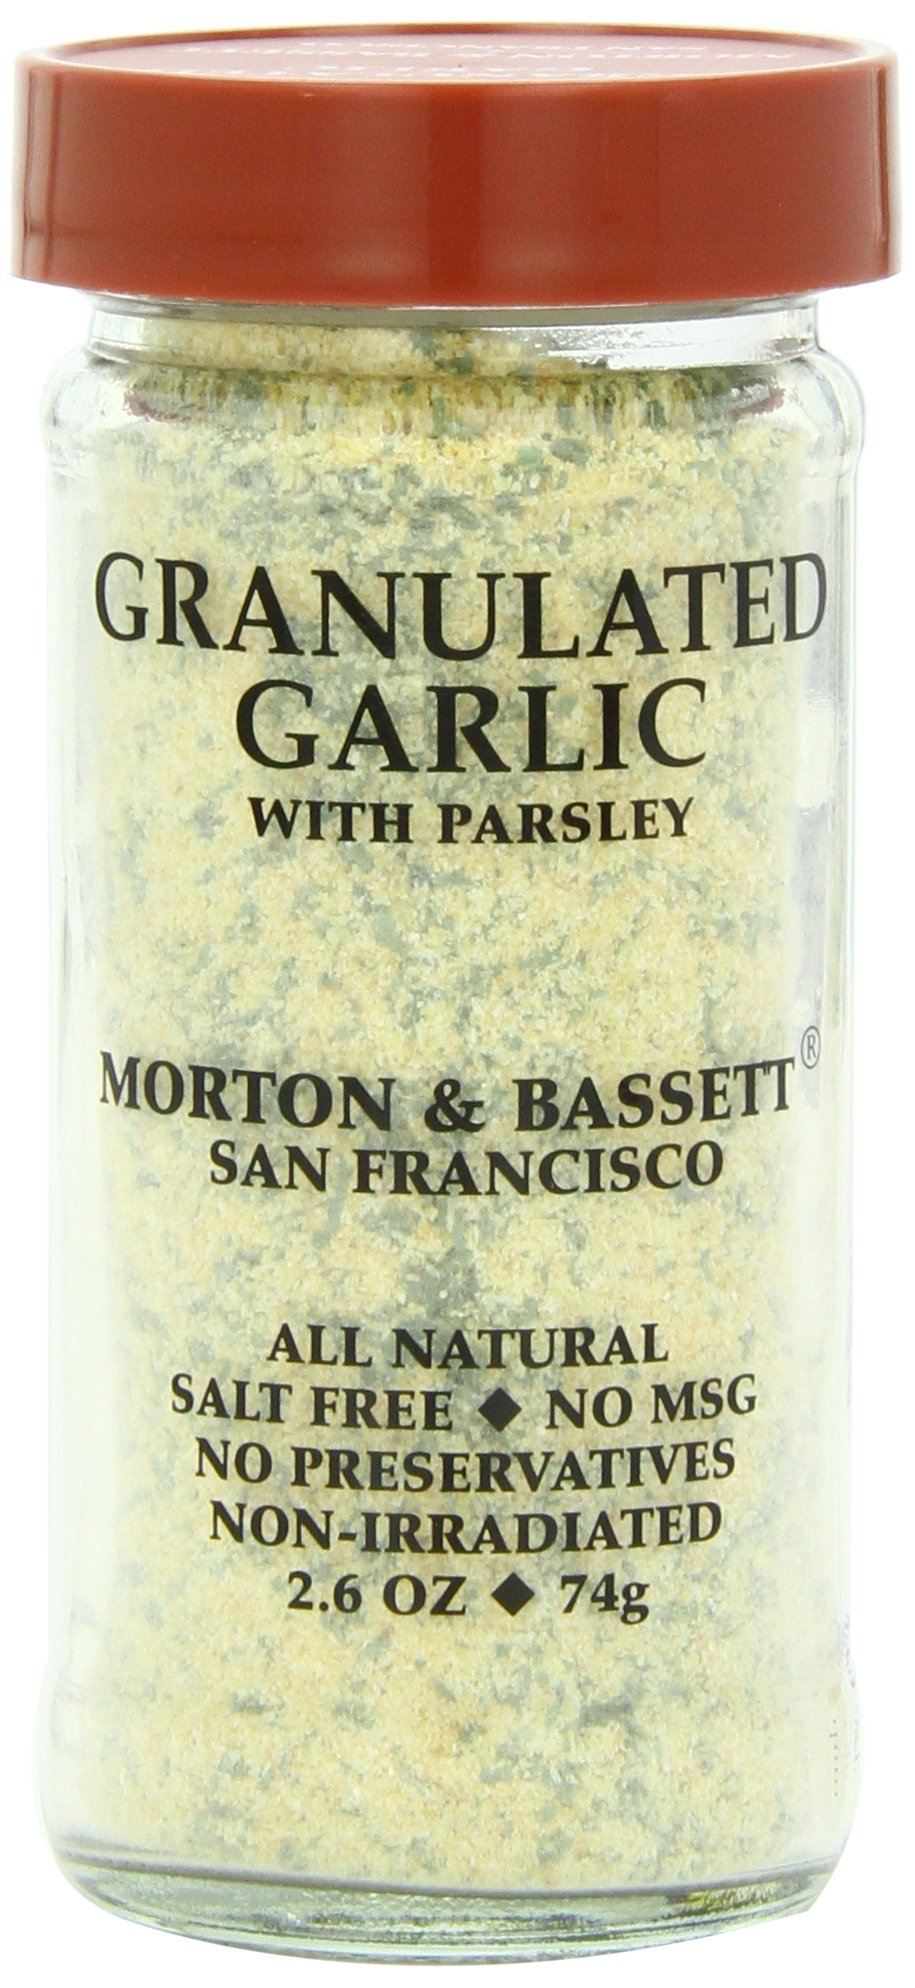 Morton & Basset Spices, Granulated Garlic with Parsley, 2.6 Ounce (Pack of 3)